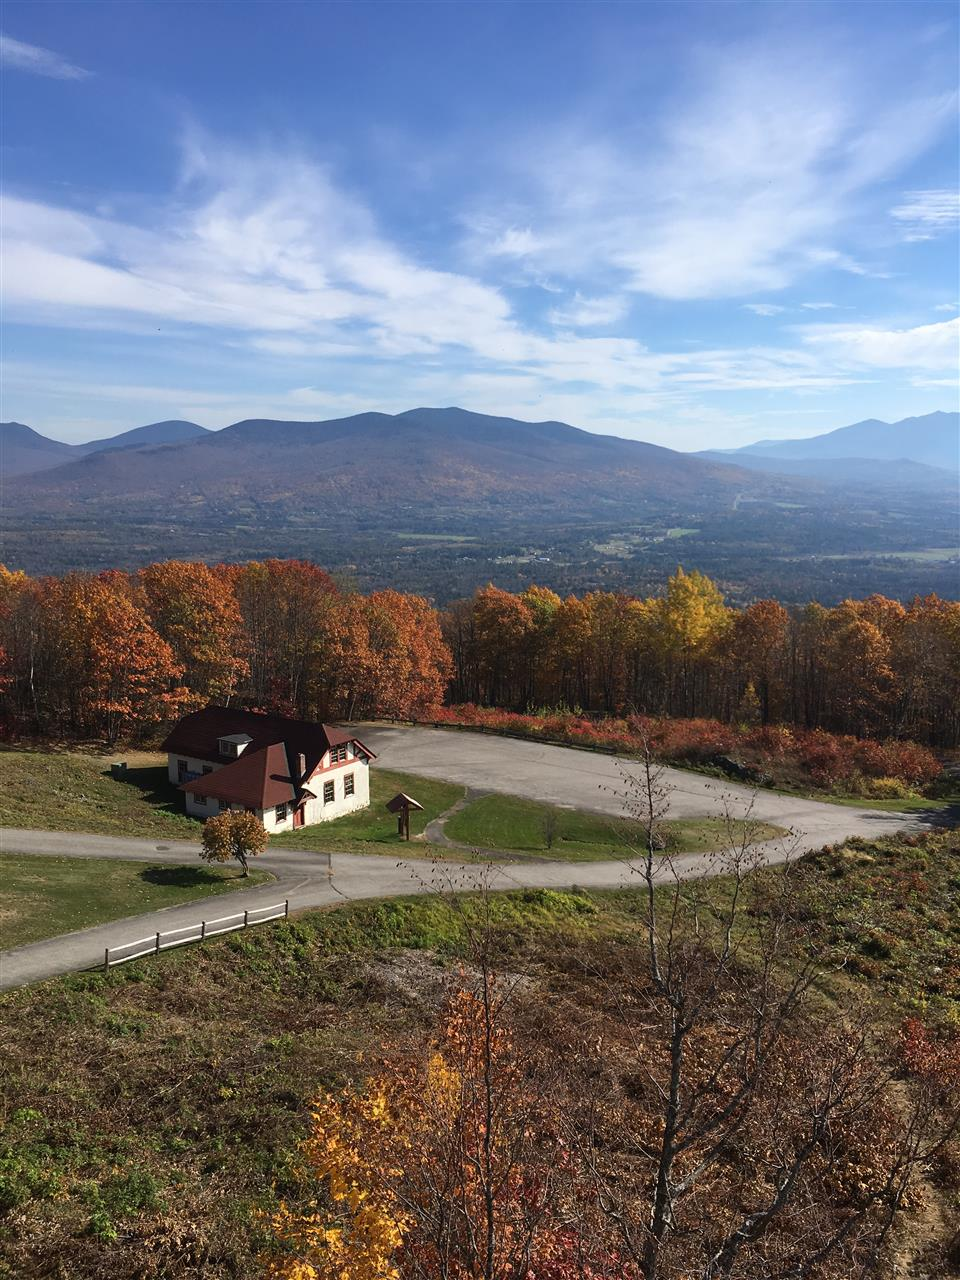 Views of the White Mountains from Weeks State Park, Mount Prospect, Lancaster, New Hampshire.